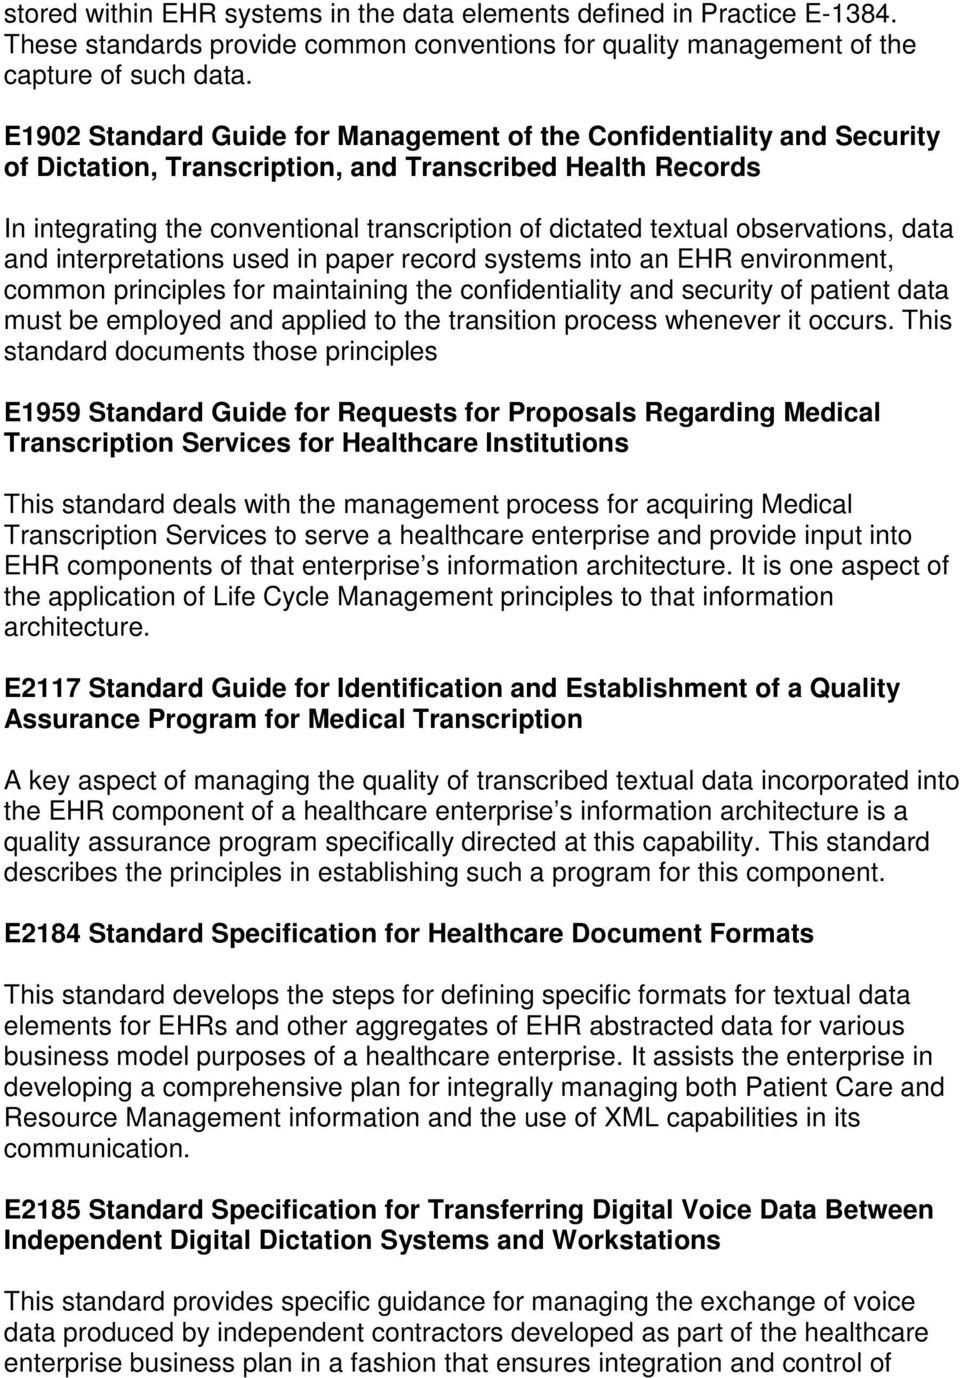 observations, data and interpretations used in paper record systems into an EHR environment, common principles for maintaining the confidentiality and security of patient data must be employed and